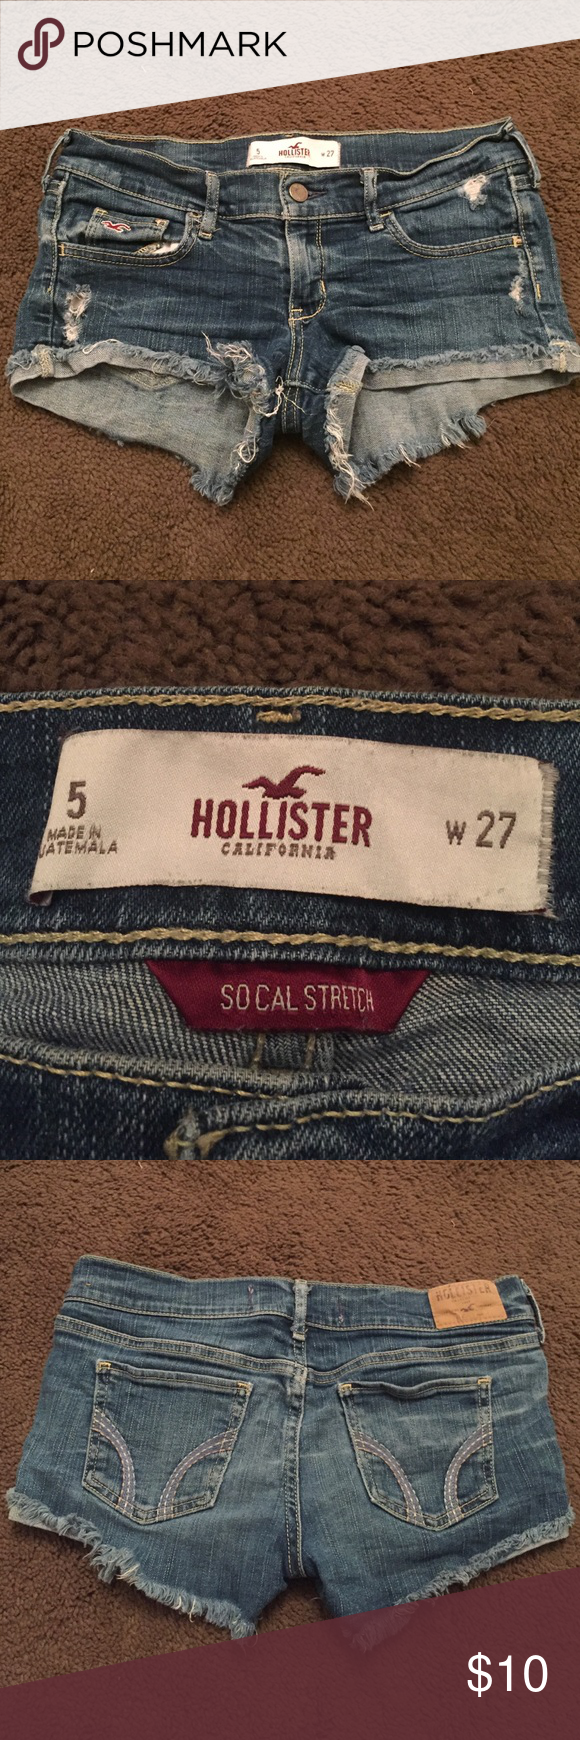 Stretch Jean cut off shorts Distressed cut off jean shorts from hollister size 5 W27. These are low rise shorts in a medium wash. They have a nice stretch to them and are very form fitting. Hollister Shorts Jean Shorts